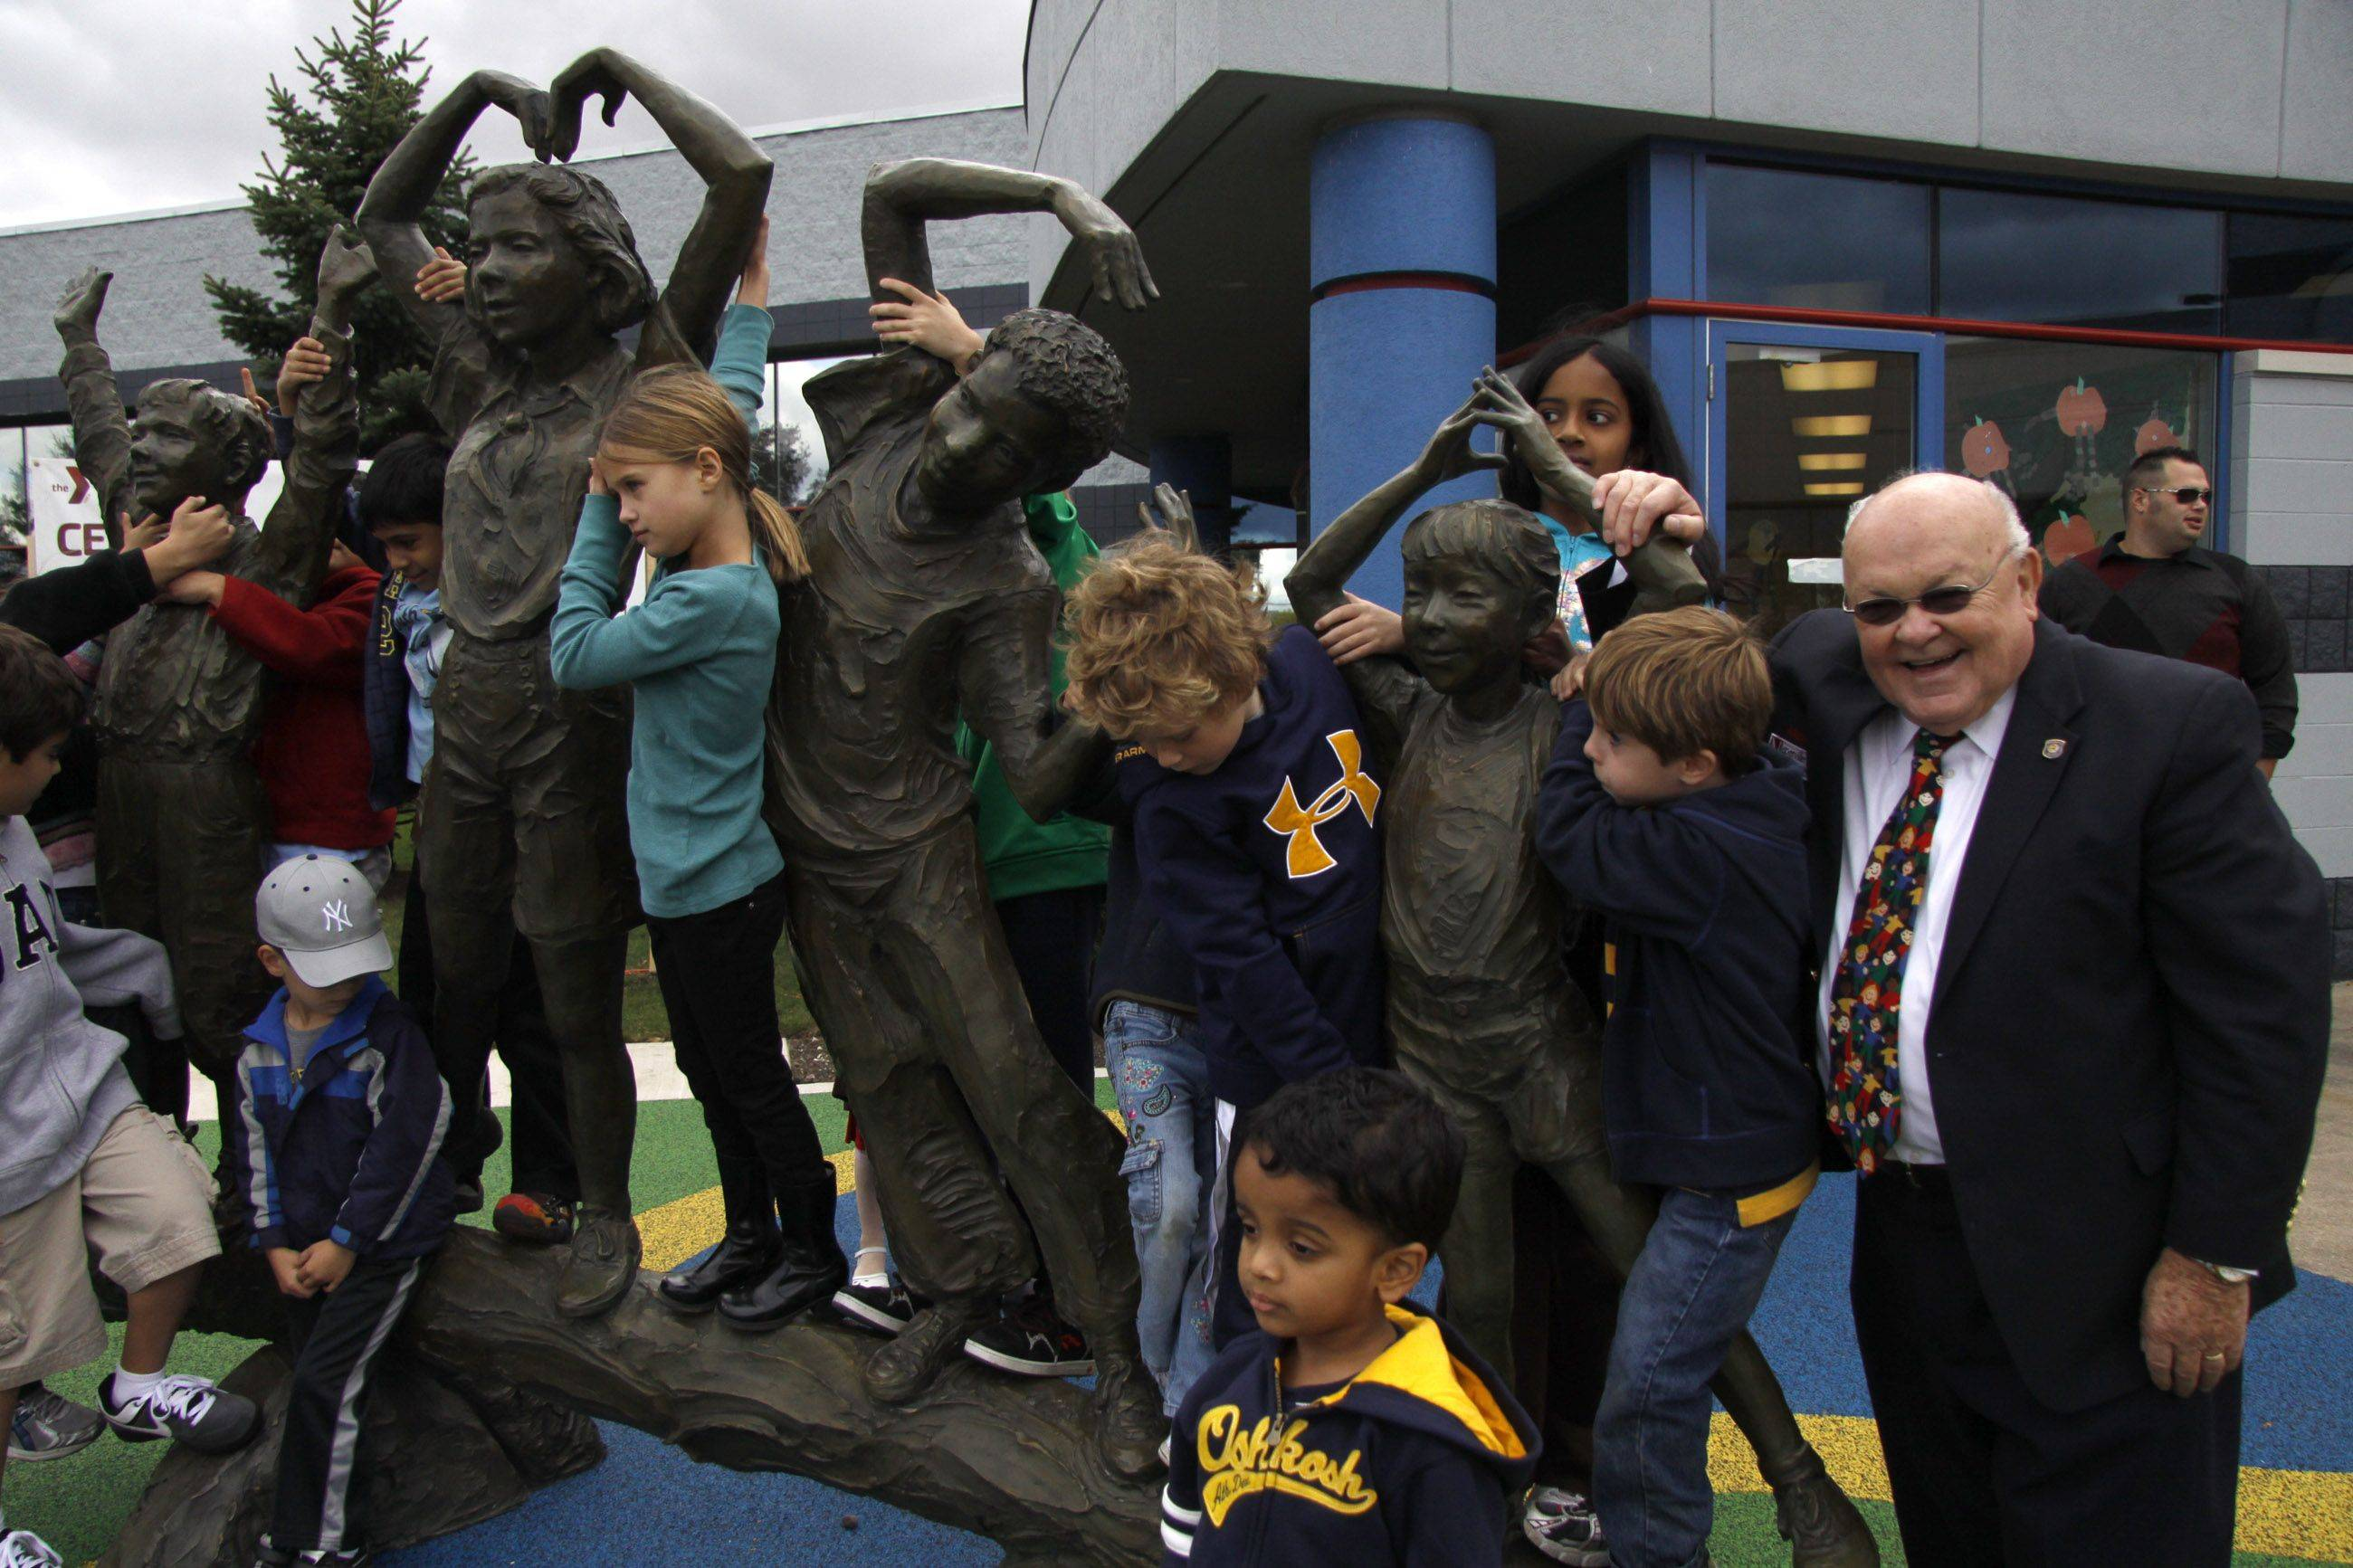 The unveiling of the new Century Walk YMCA statue was held Sunday at Fry Family YMCA in Naperville. Naperville Mayor George Pradel poses for a shot next to the new statue. Children are encouraged to climb on the 1500 lb work of art.